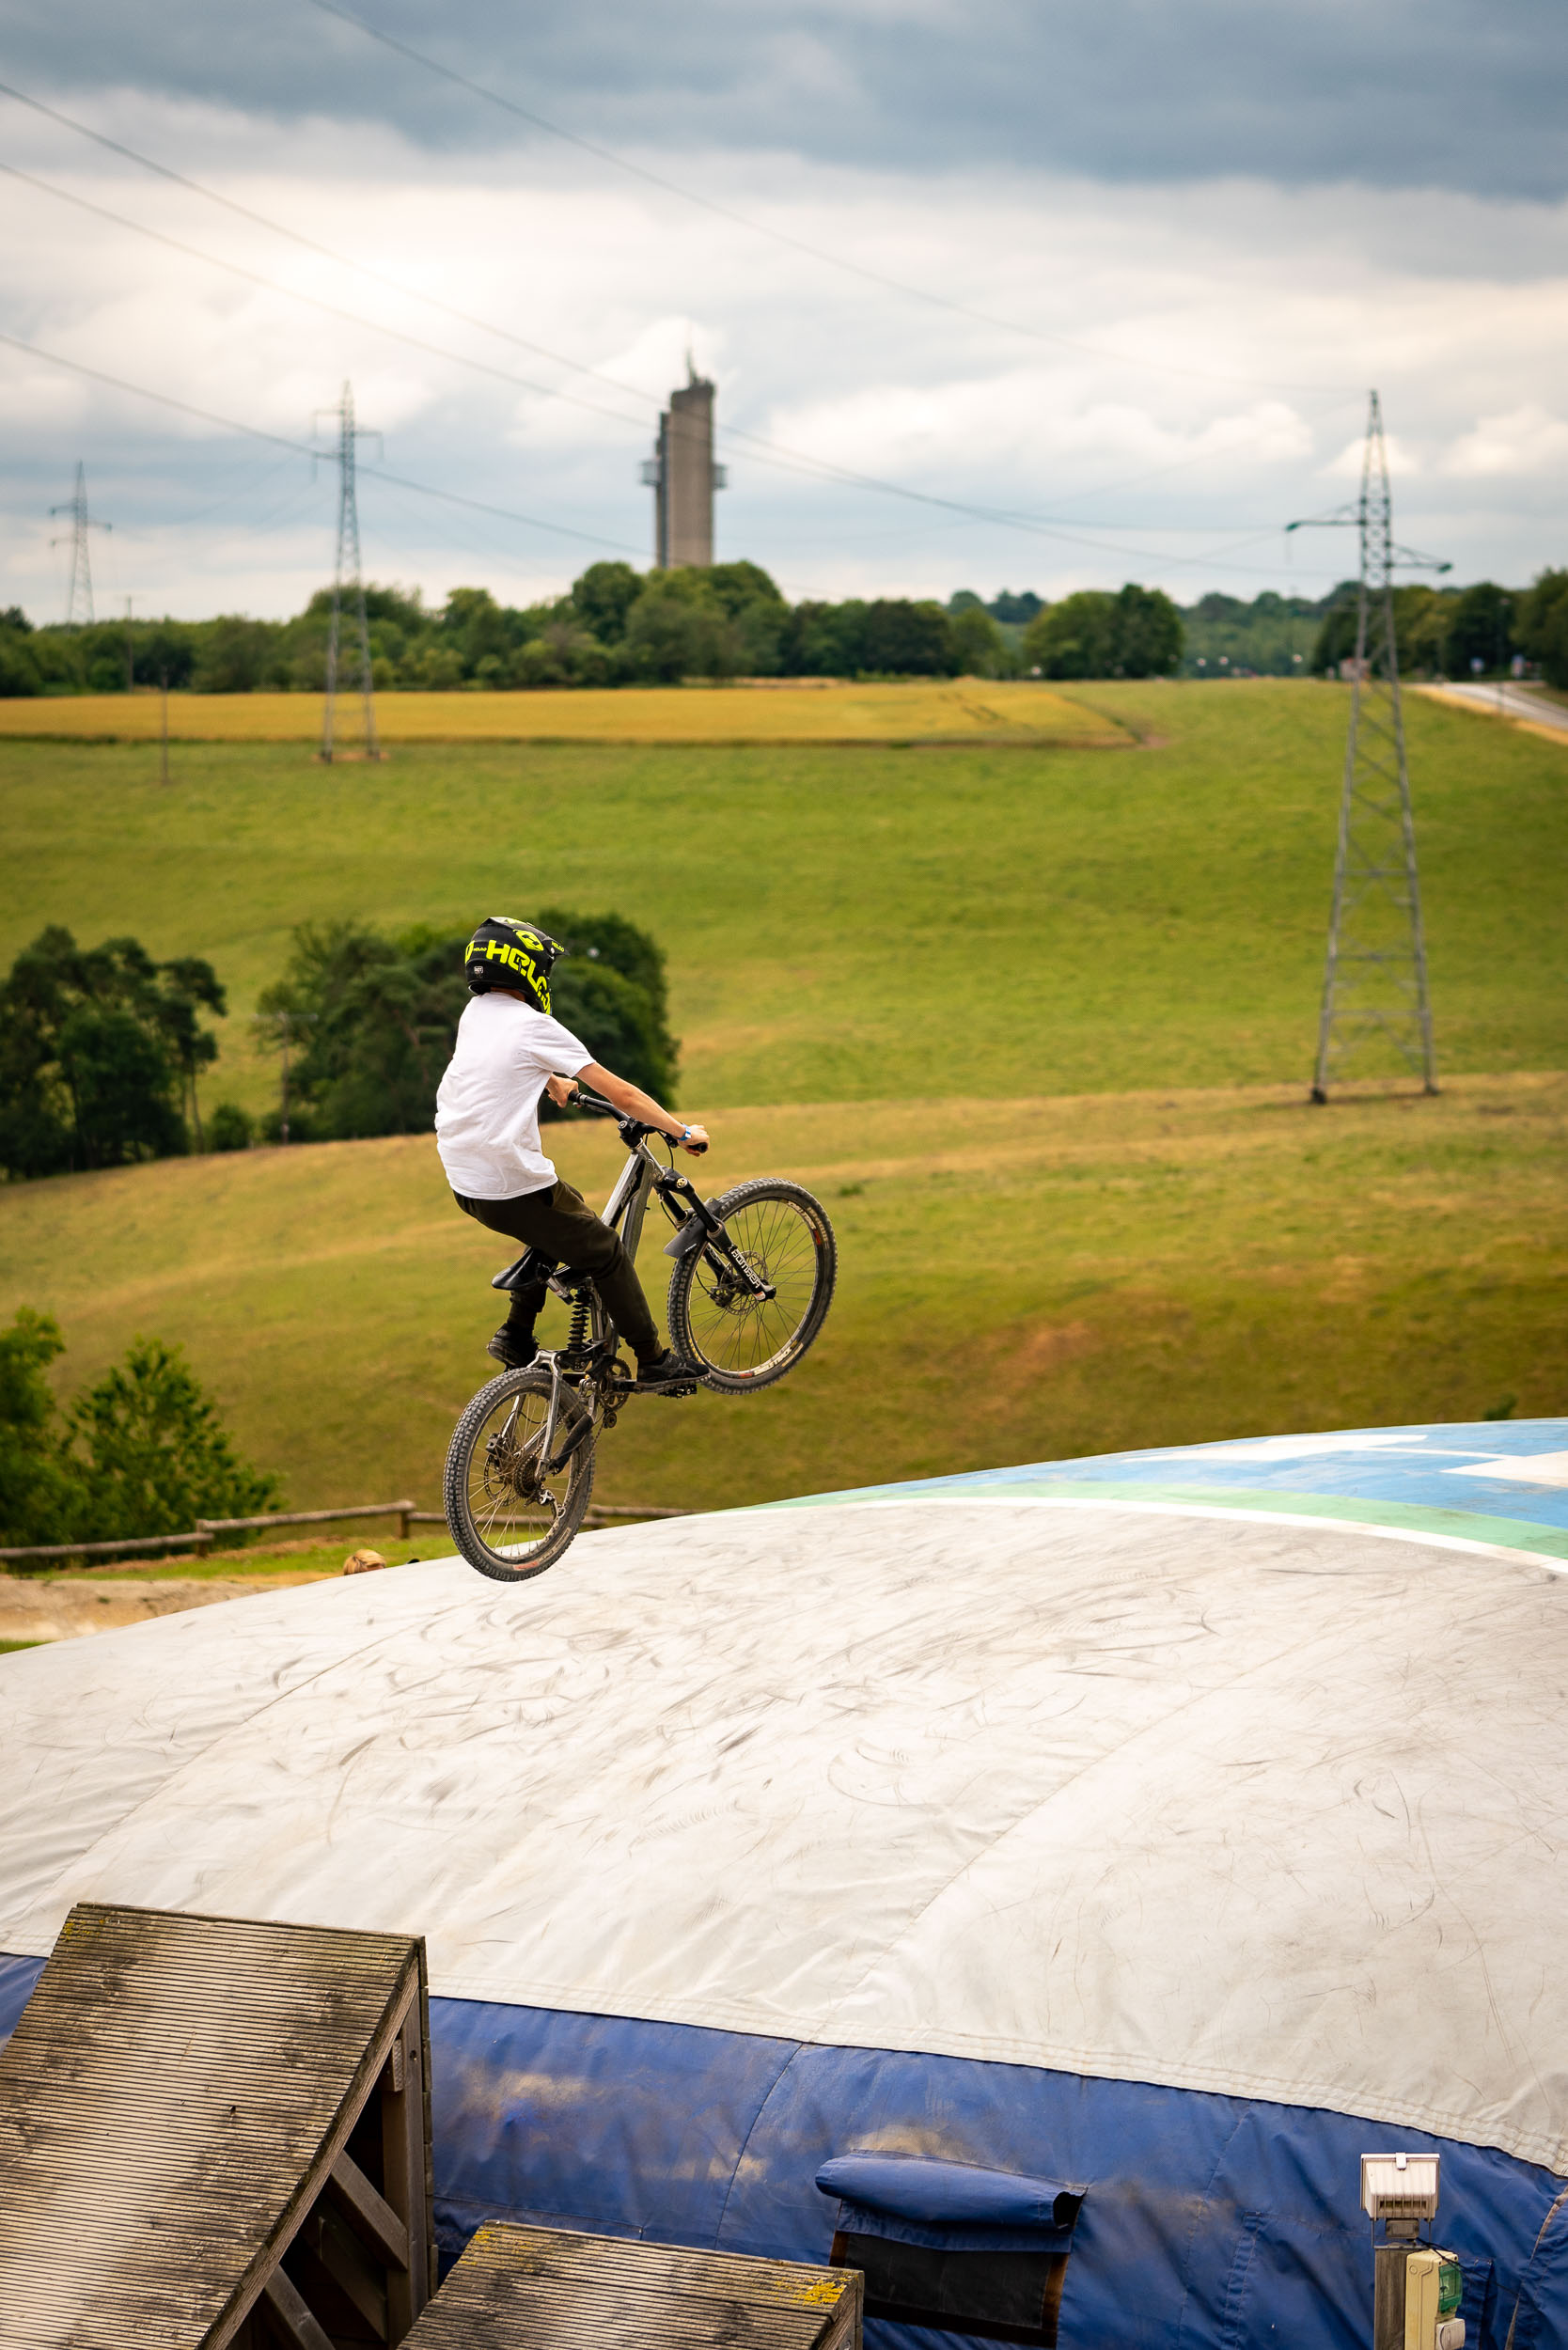 Day at the Bike Park. Photo taken by an event photographer.